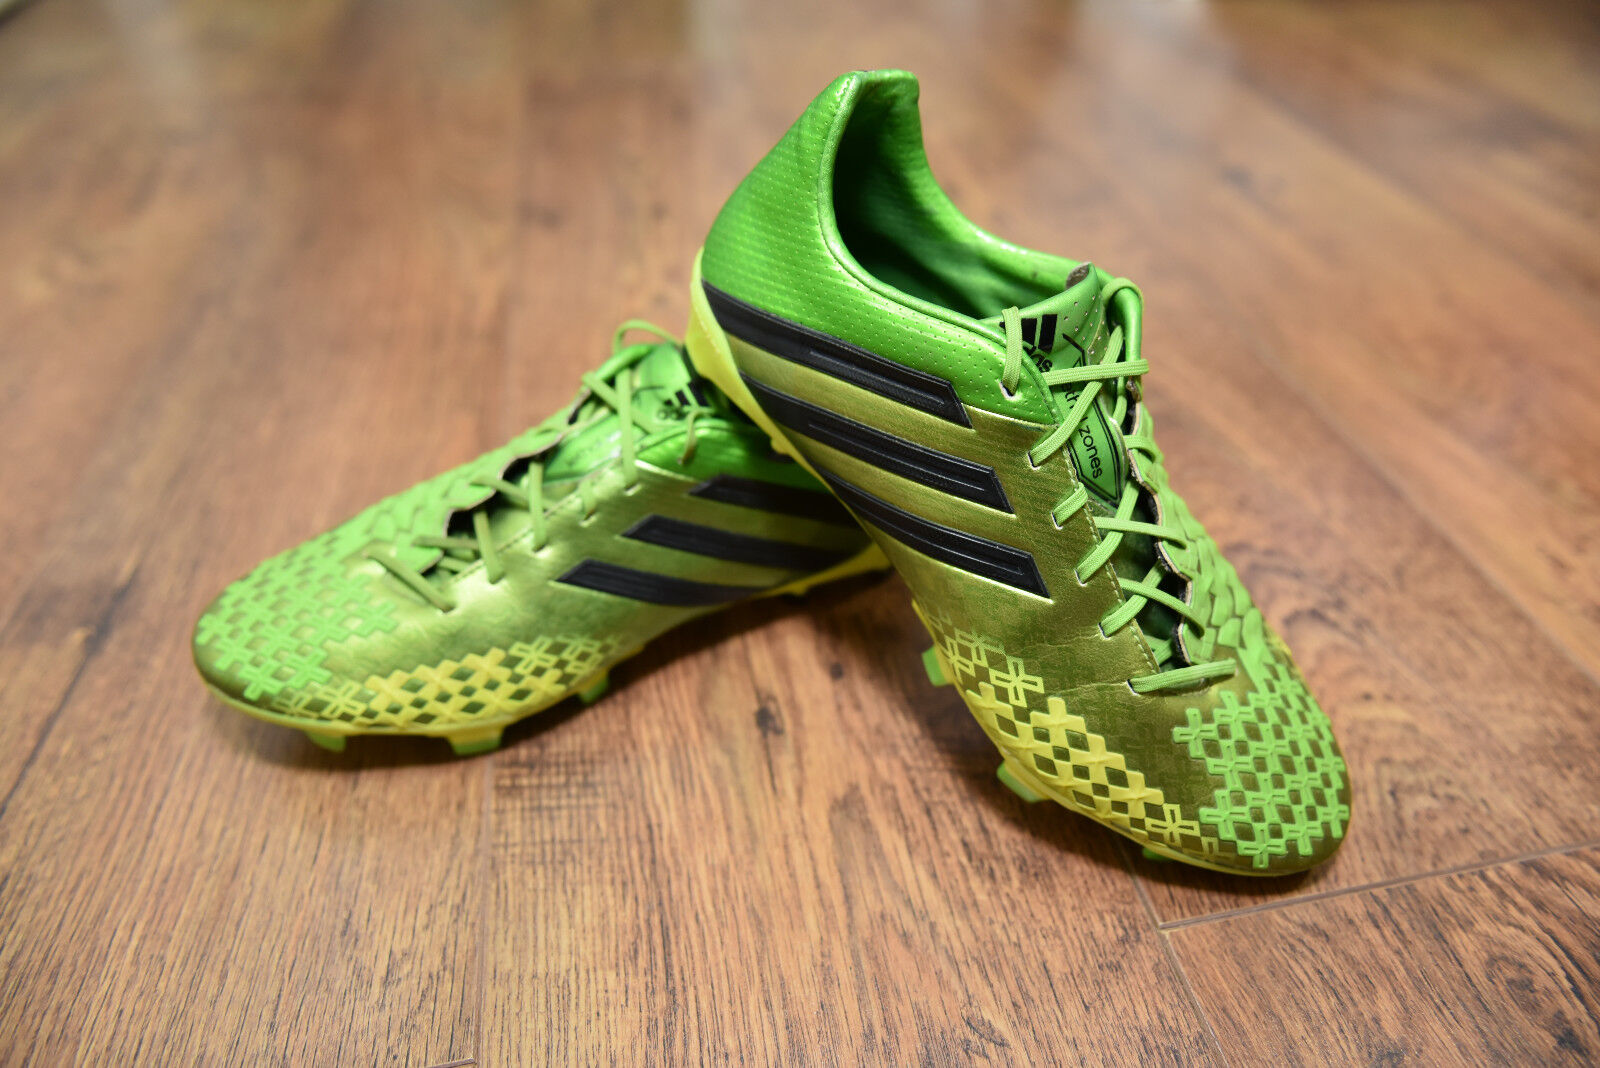 Adidas Prougeator Lethal Zones FG Football bottes Uk 7 Extralumière LZ Mania VGC